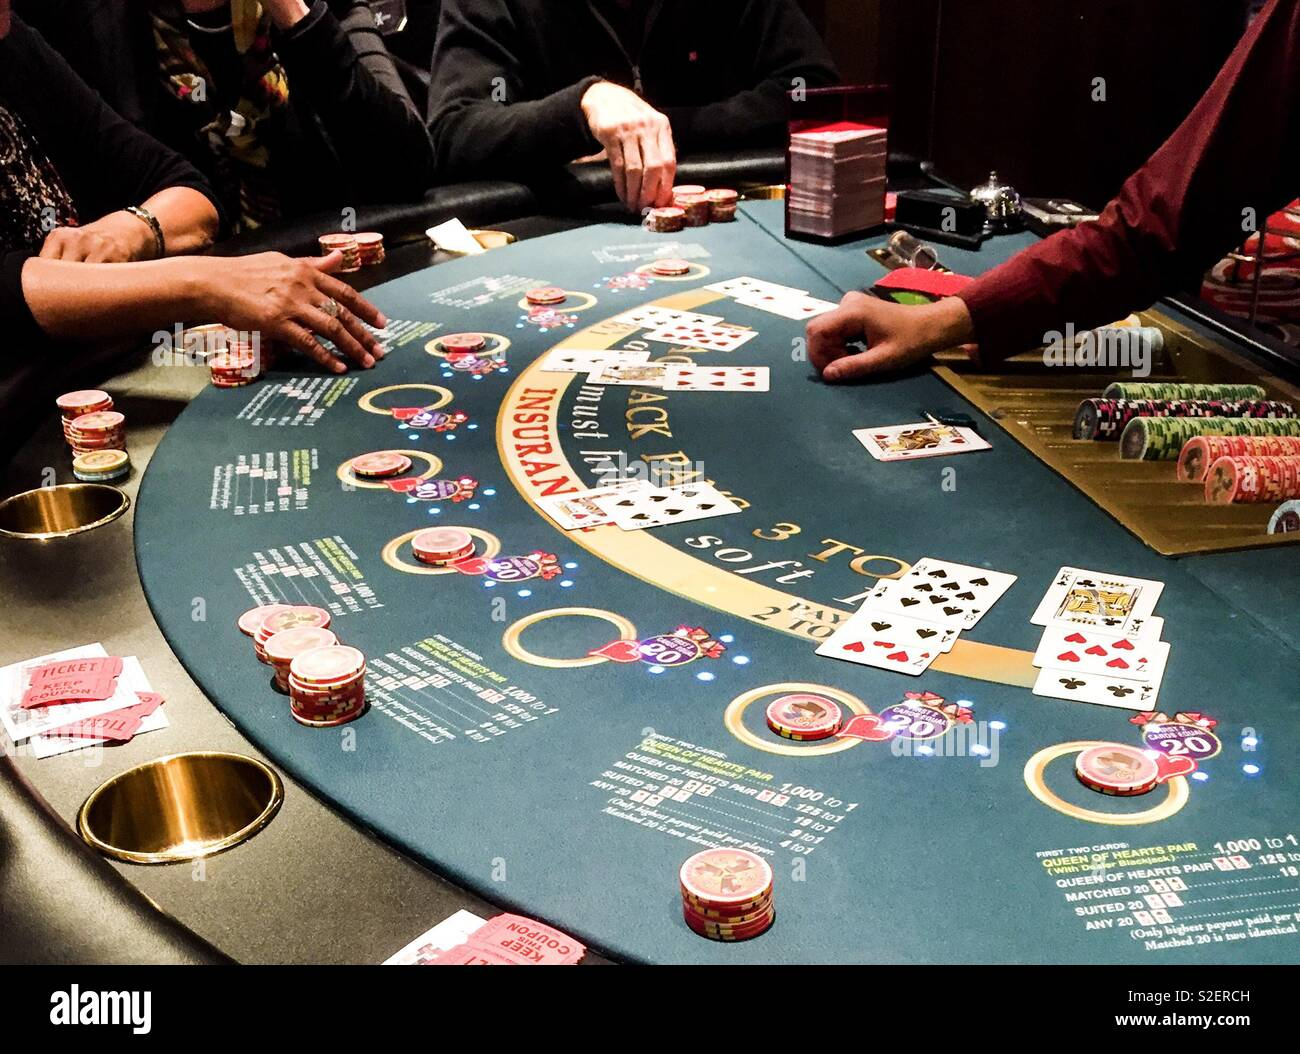 Life's a gamble as the players place their bets at the blackjack table. - Stock Image